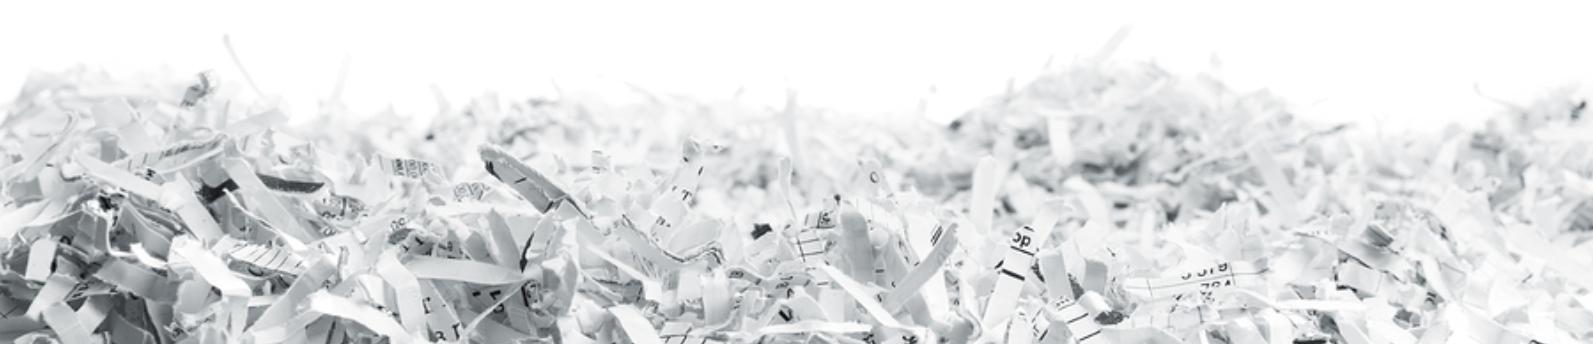 Shredded Paper Document Destruction